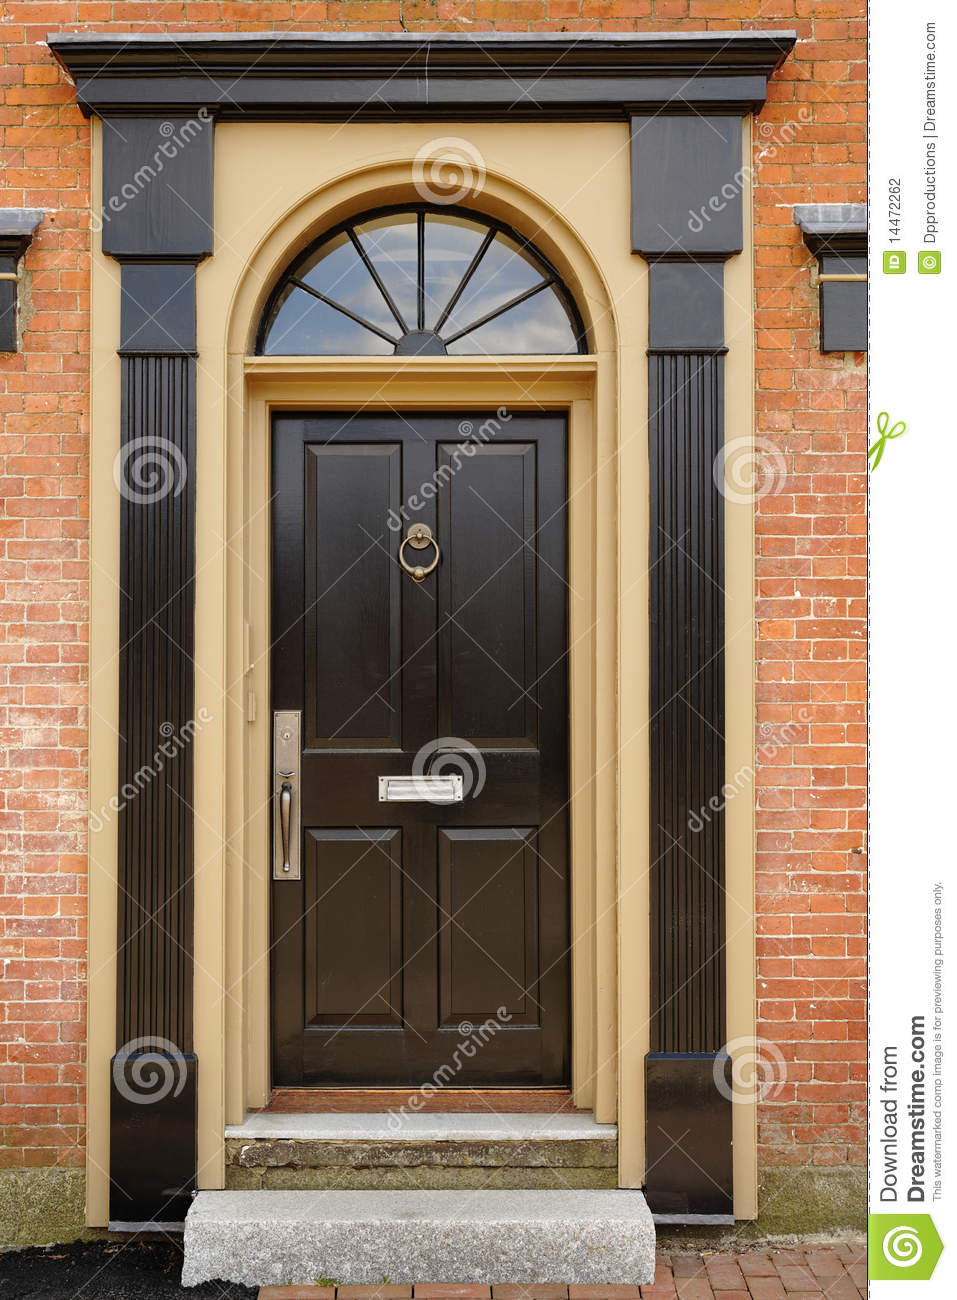 Elegant Front Door In A Brick Building Stock Photo Image Of Arched